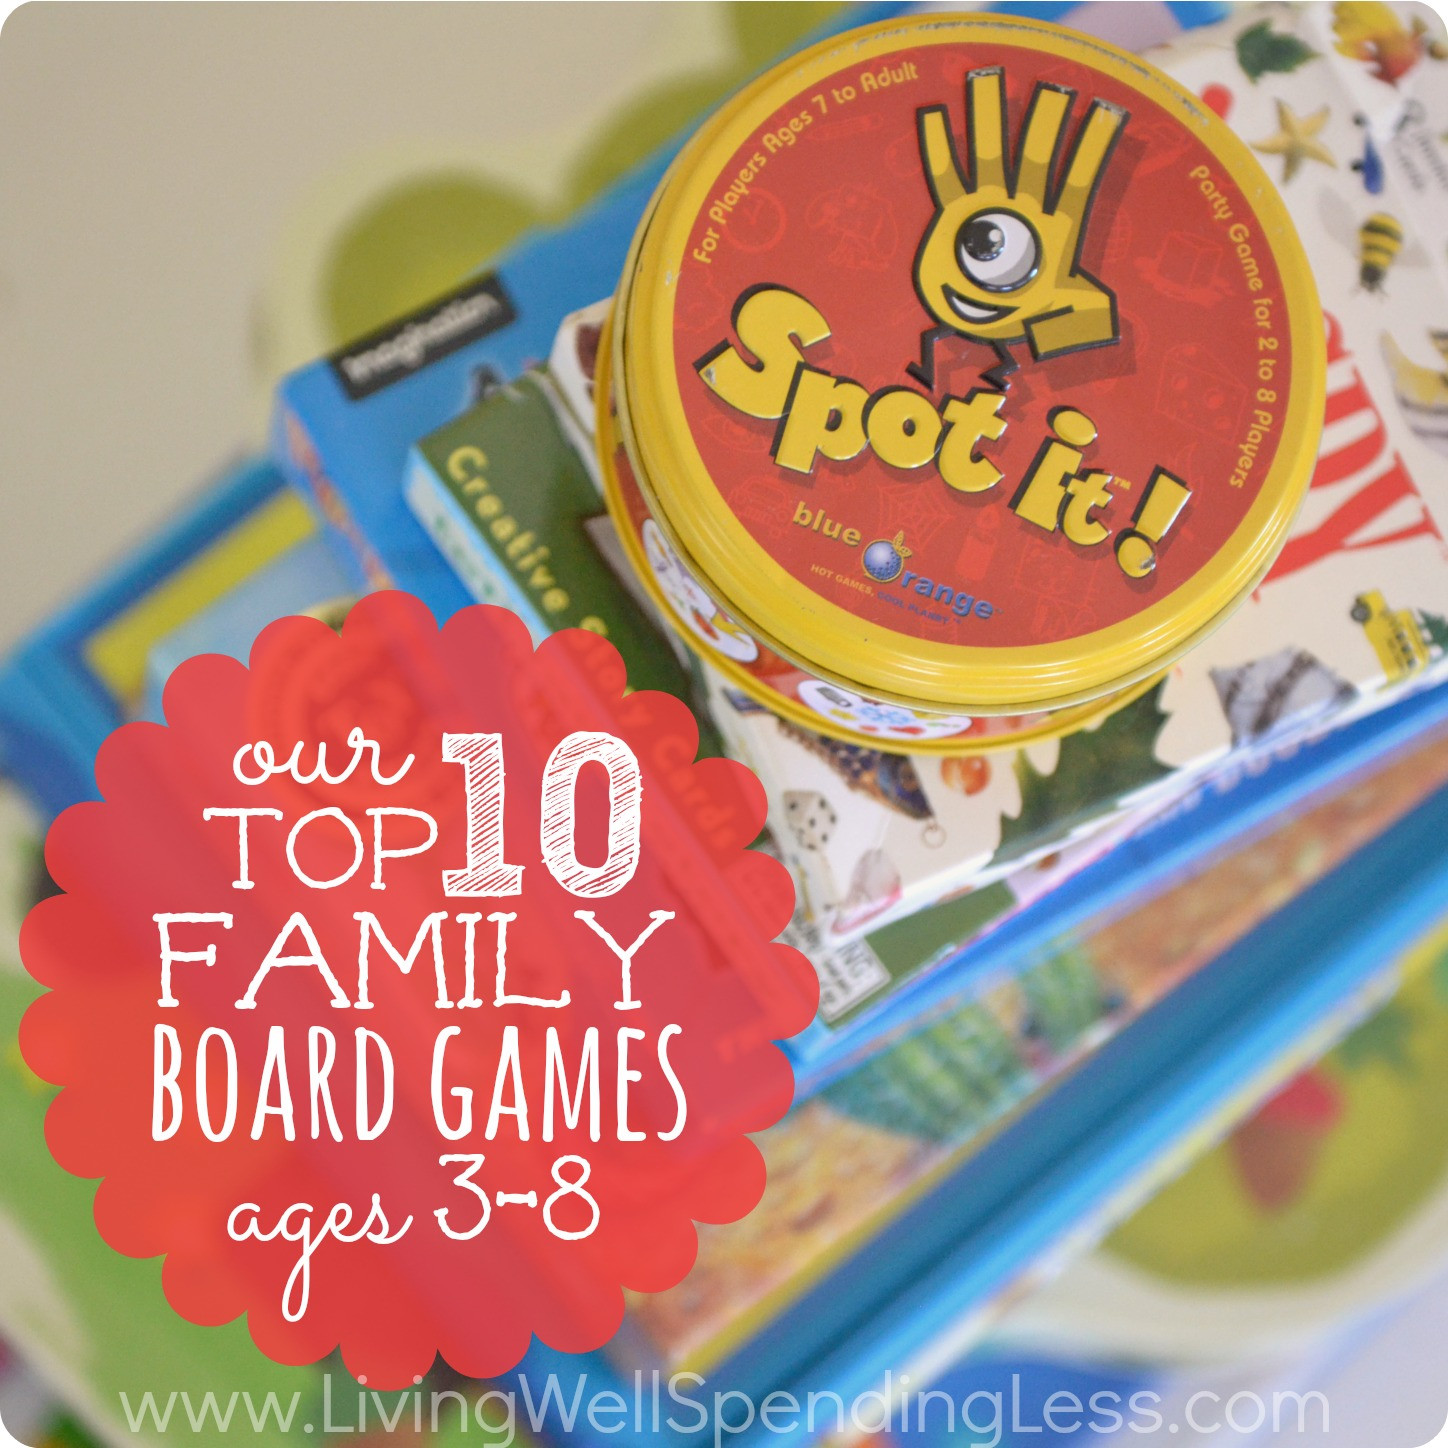 Family Board Games Lovely Our top 10 Family Board Games Awesome Review Of Ten Great Of Great 44 Ideas Family Board Games